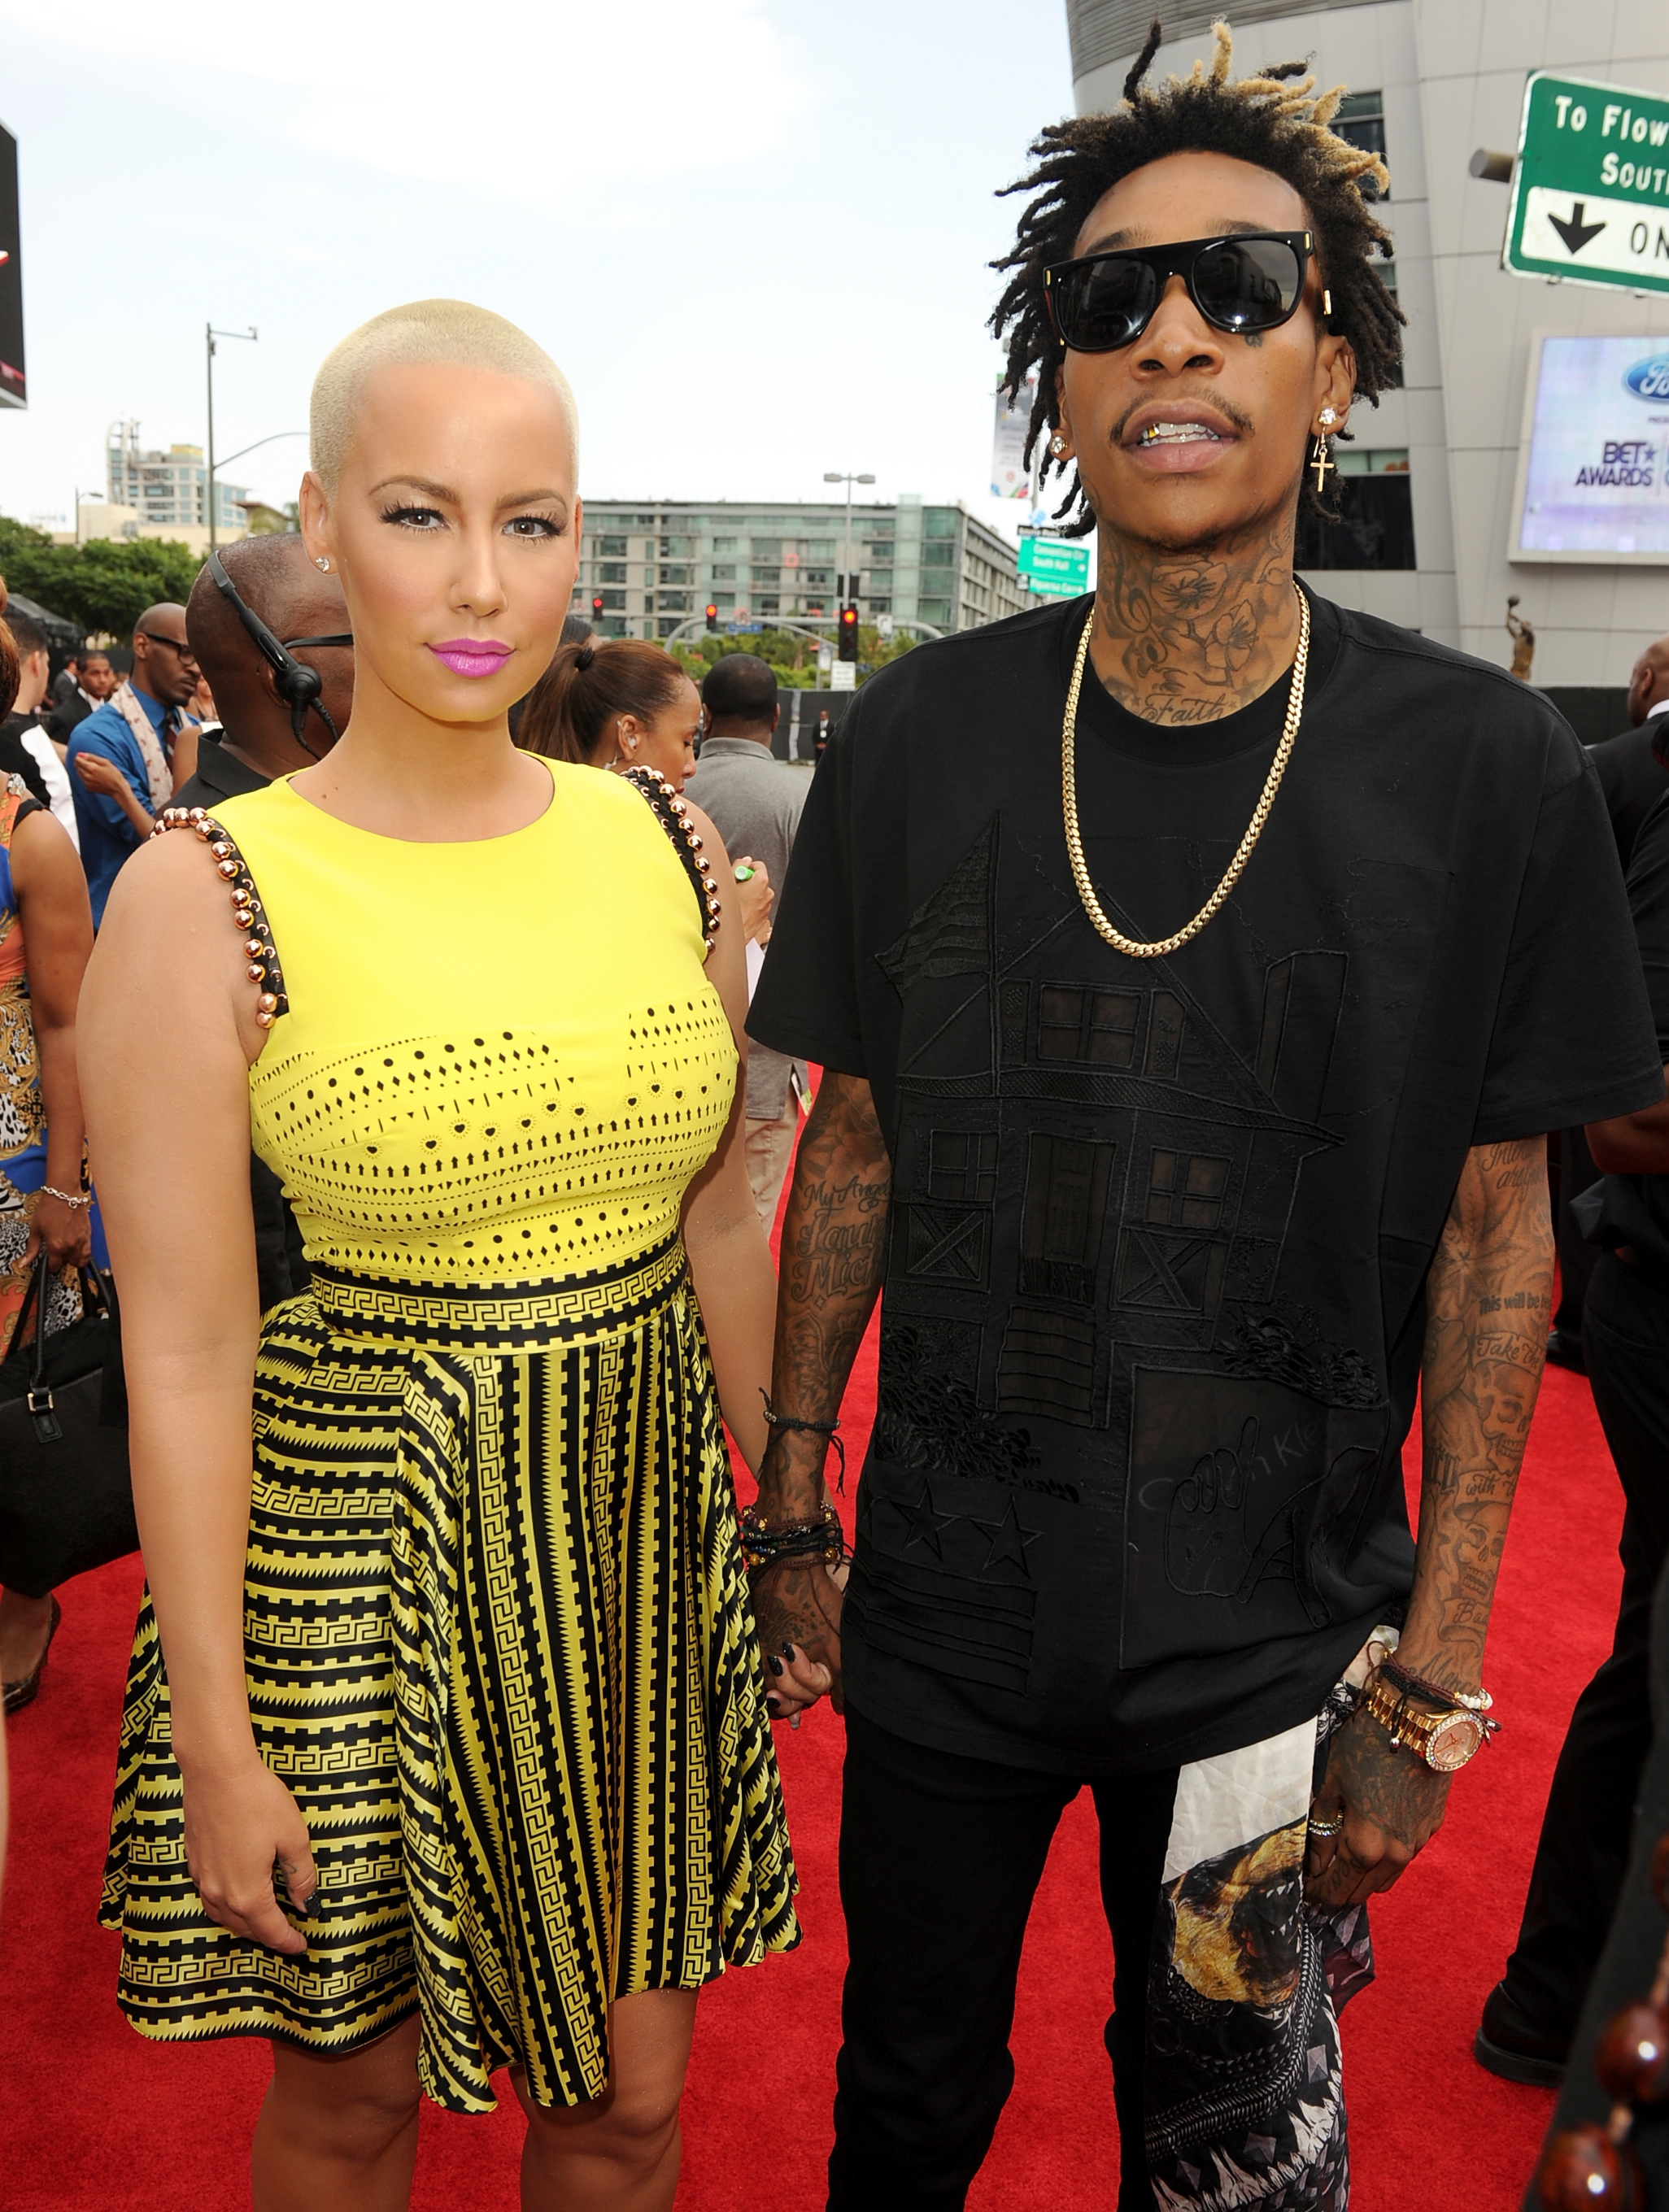 Amber Rose and Wiz Khalifa red carpet